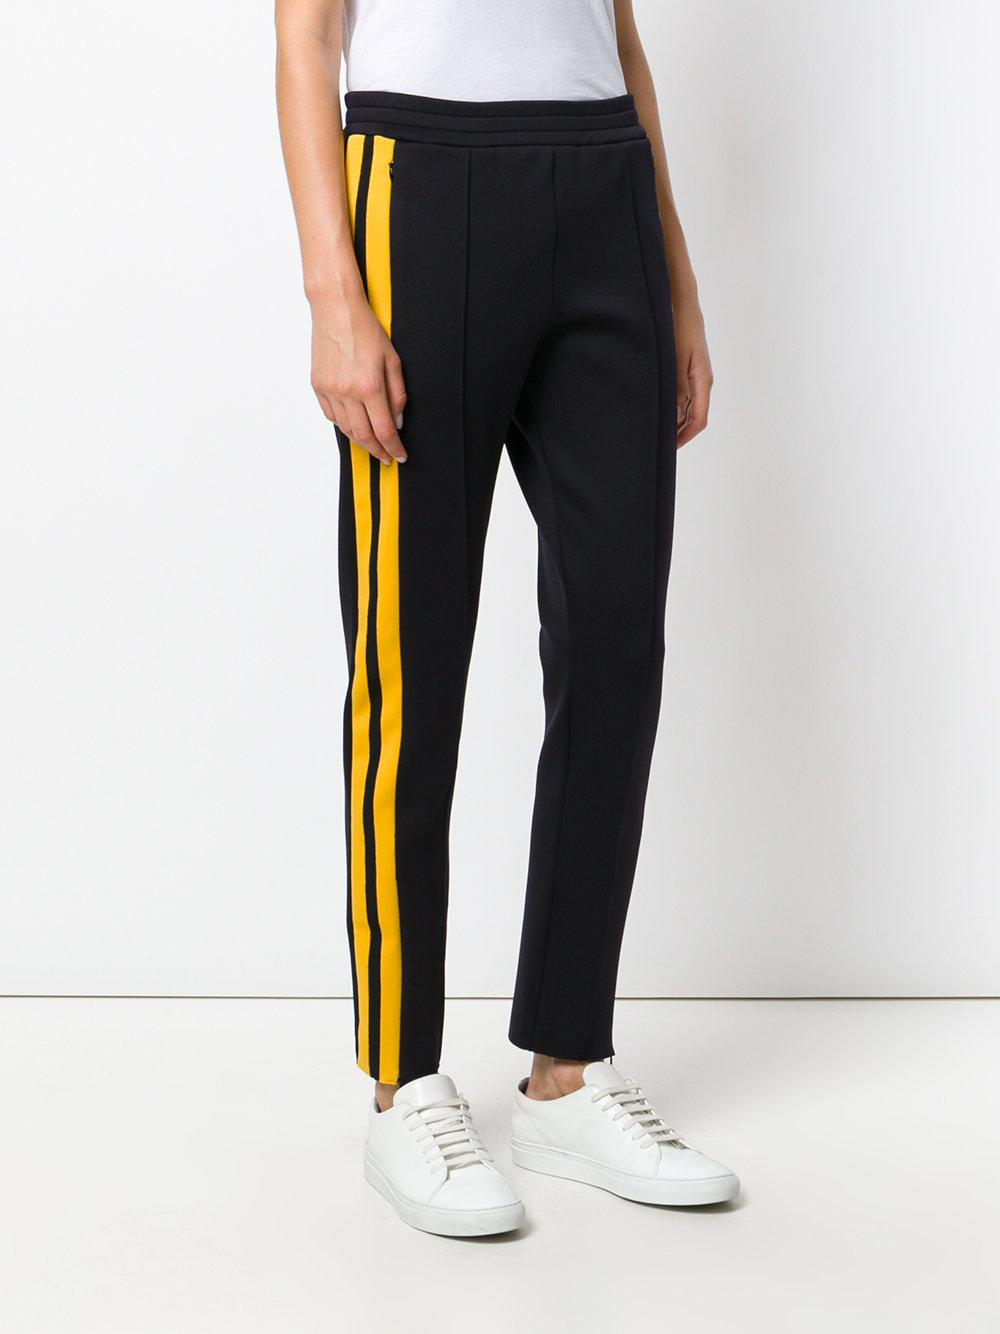 JOSEPH Synthetic Stripe Regular Fit Joggers in Black